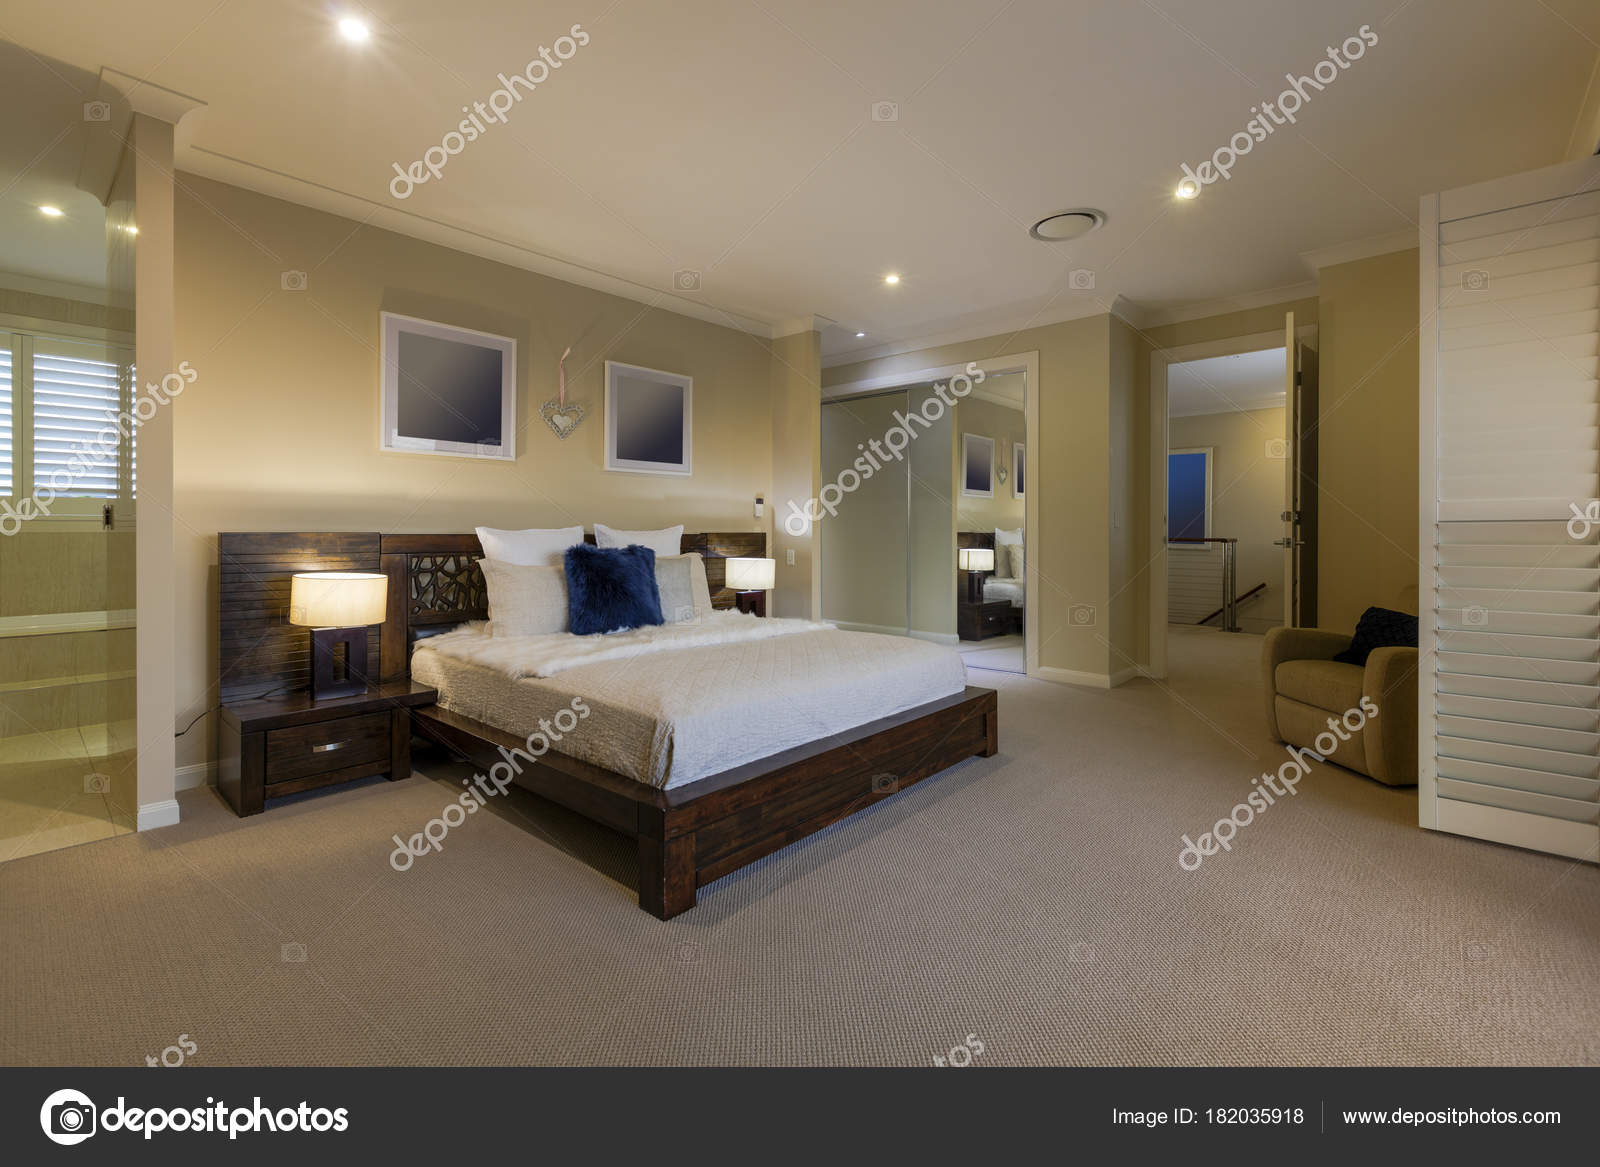 Modern Warm Cozy Bedroom Luxurious Home Stock Photo Image By C Zstockphotos 182035918